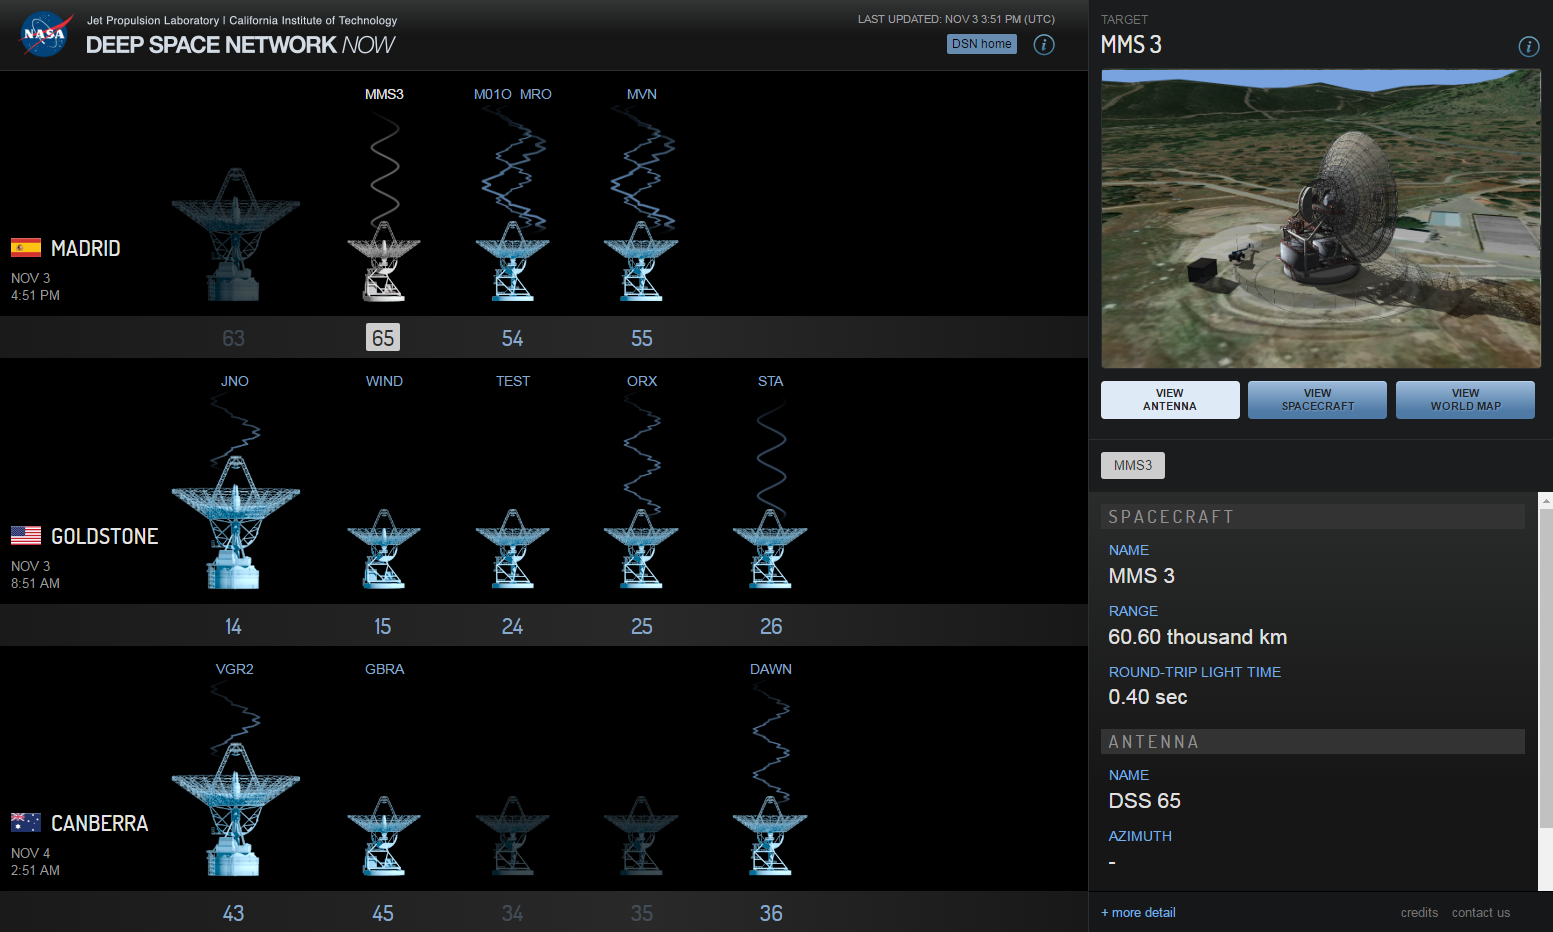 DSN Now - NASA Eyes on the Solar System